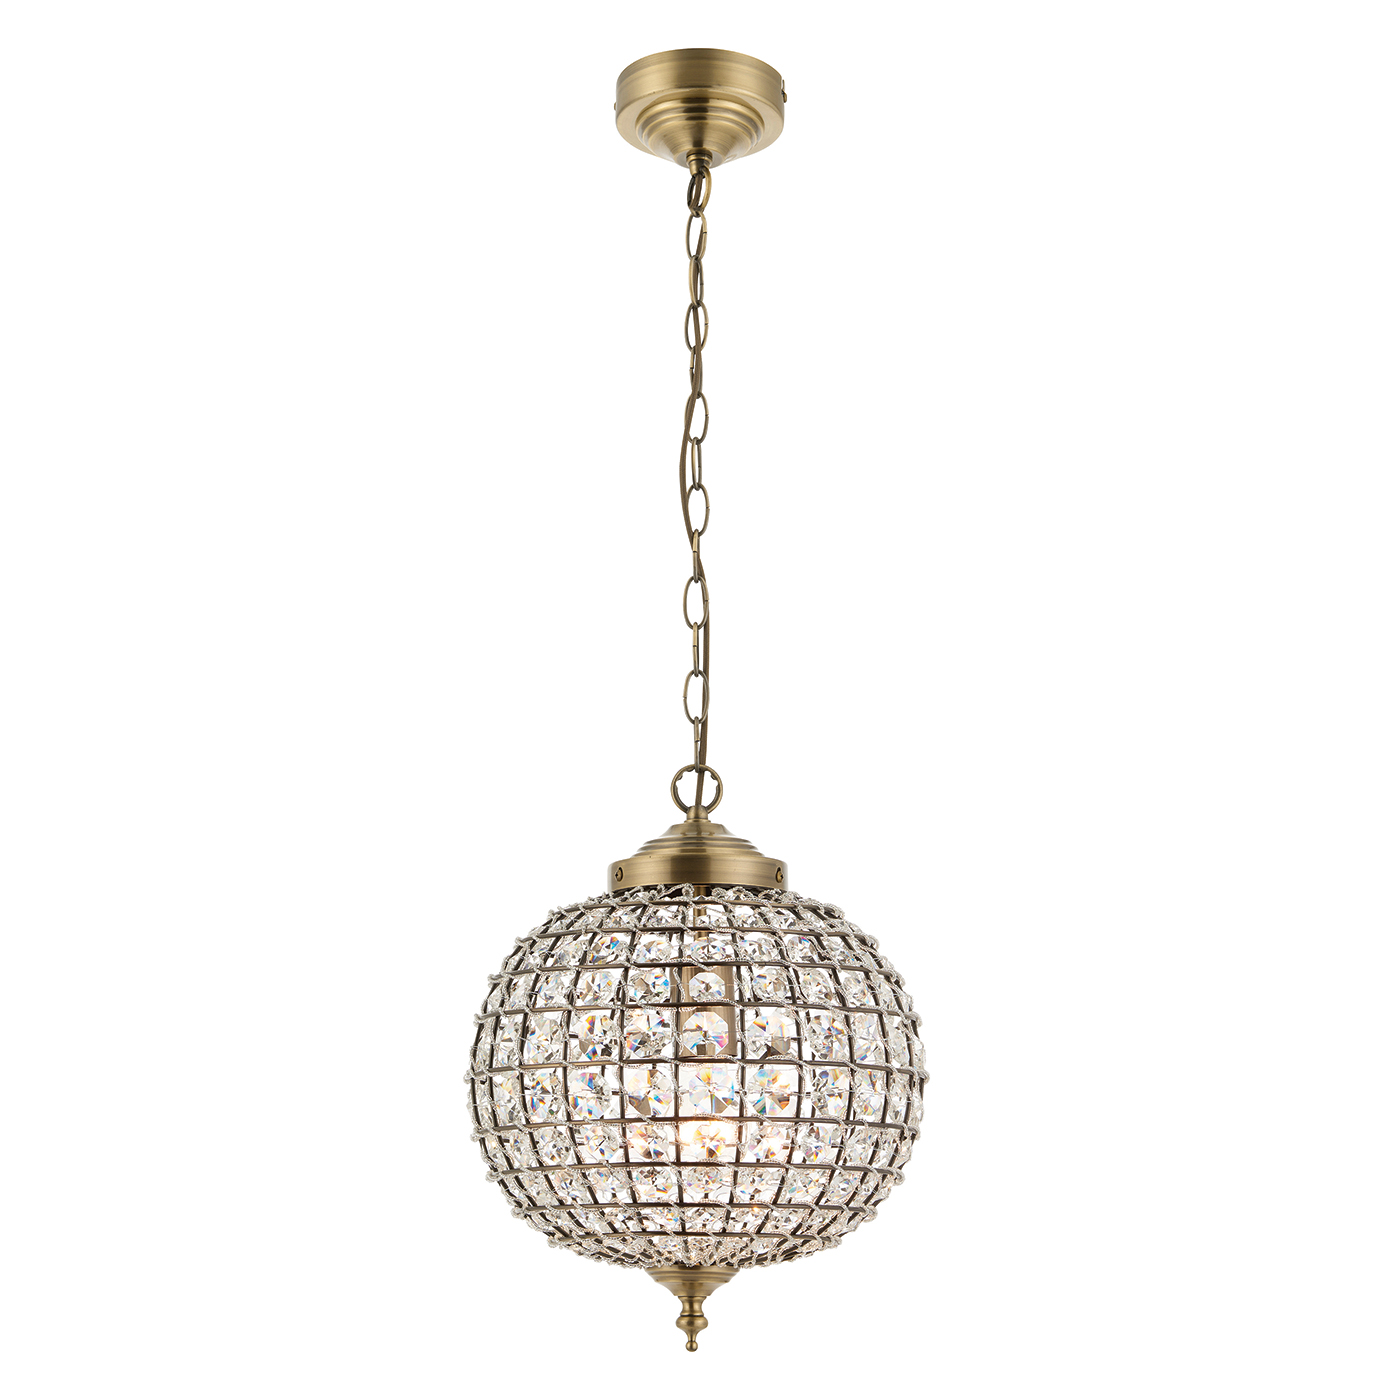 Endon Tanaro pendant 1x 60W Antique brass effect plate & clear glass detail